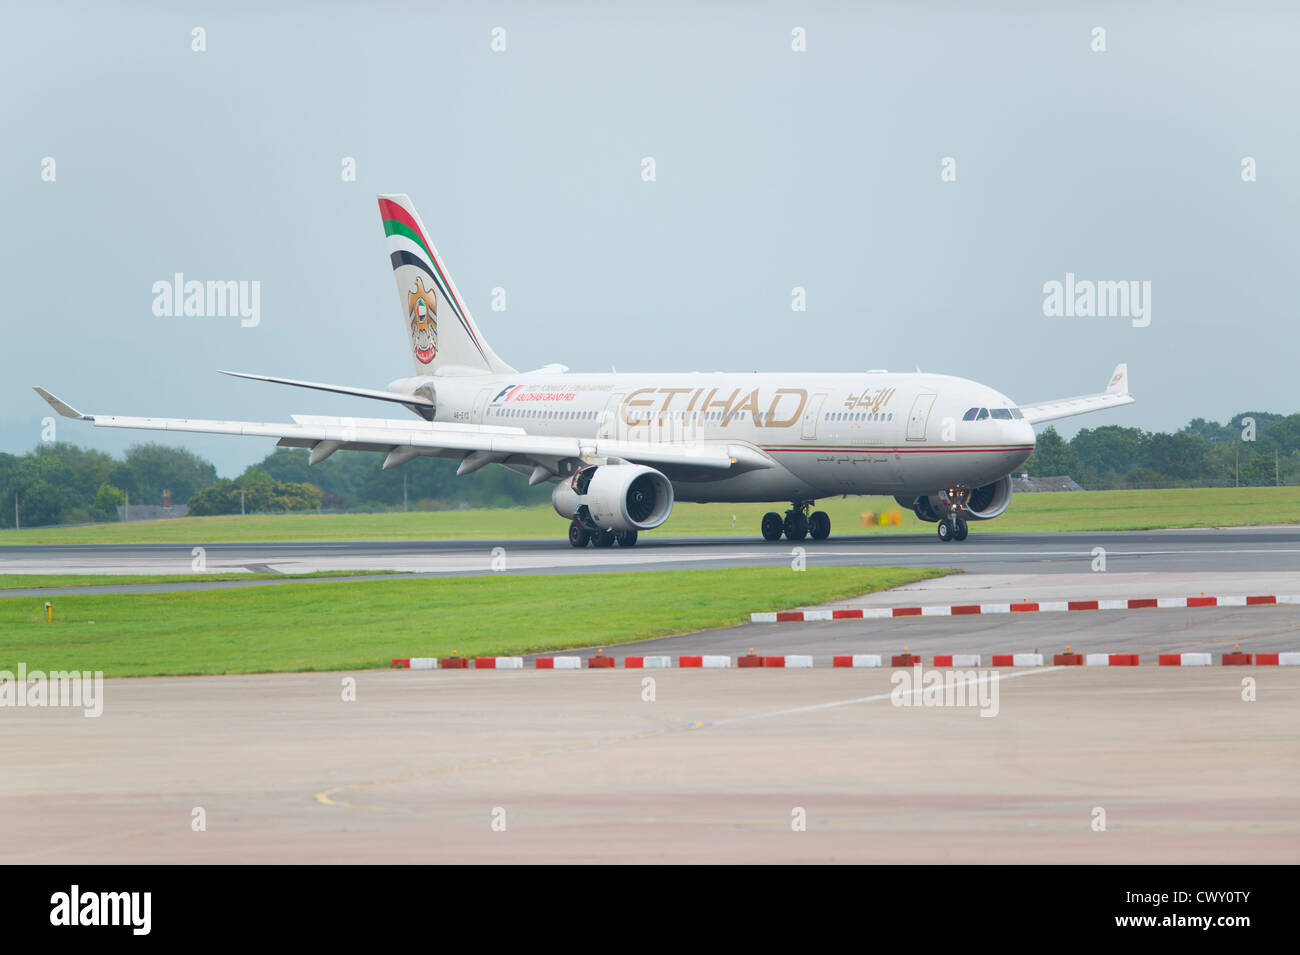 An Etihad Airbus A330 taxiing on the runway of Manchester International Airport (Editorial use only) - Stock Image